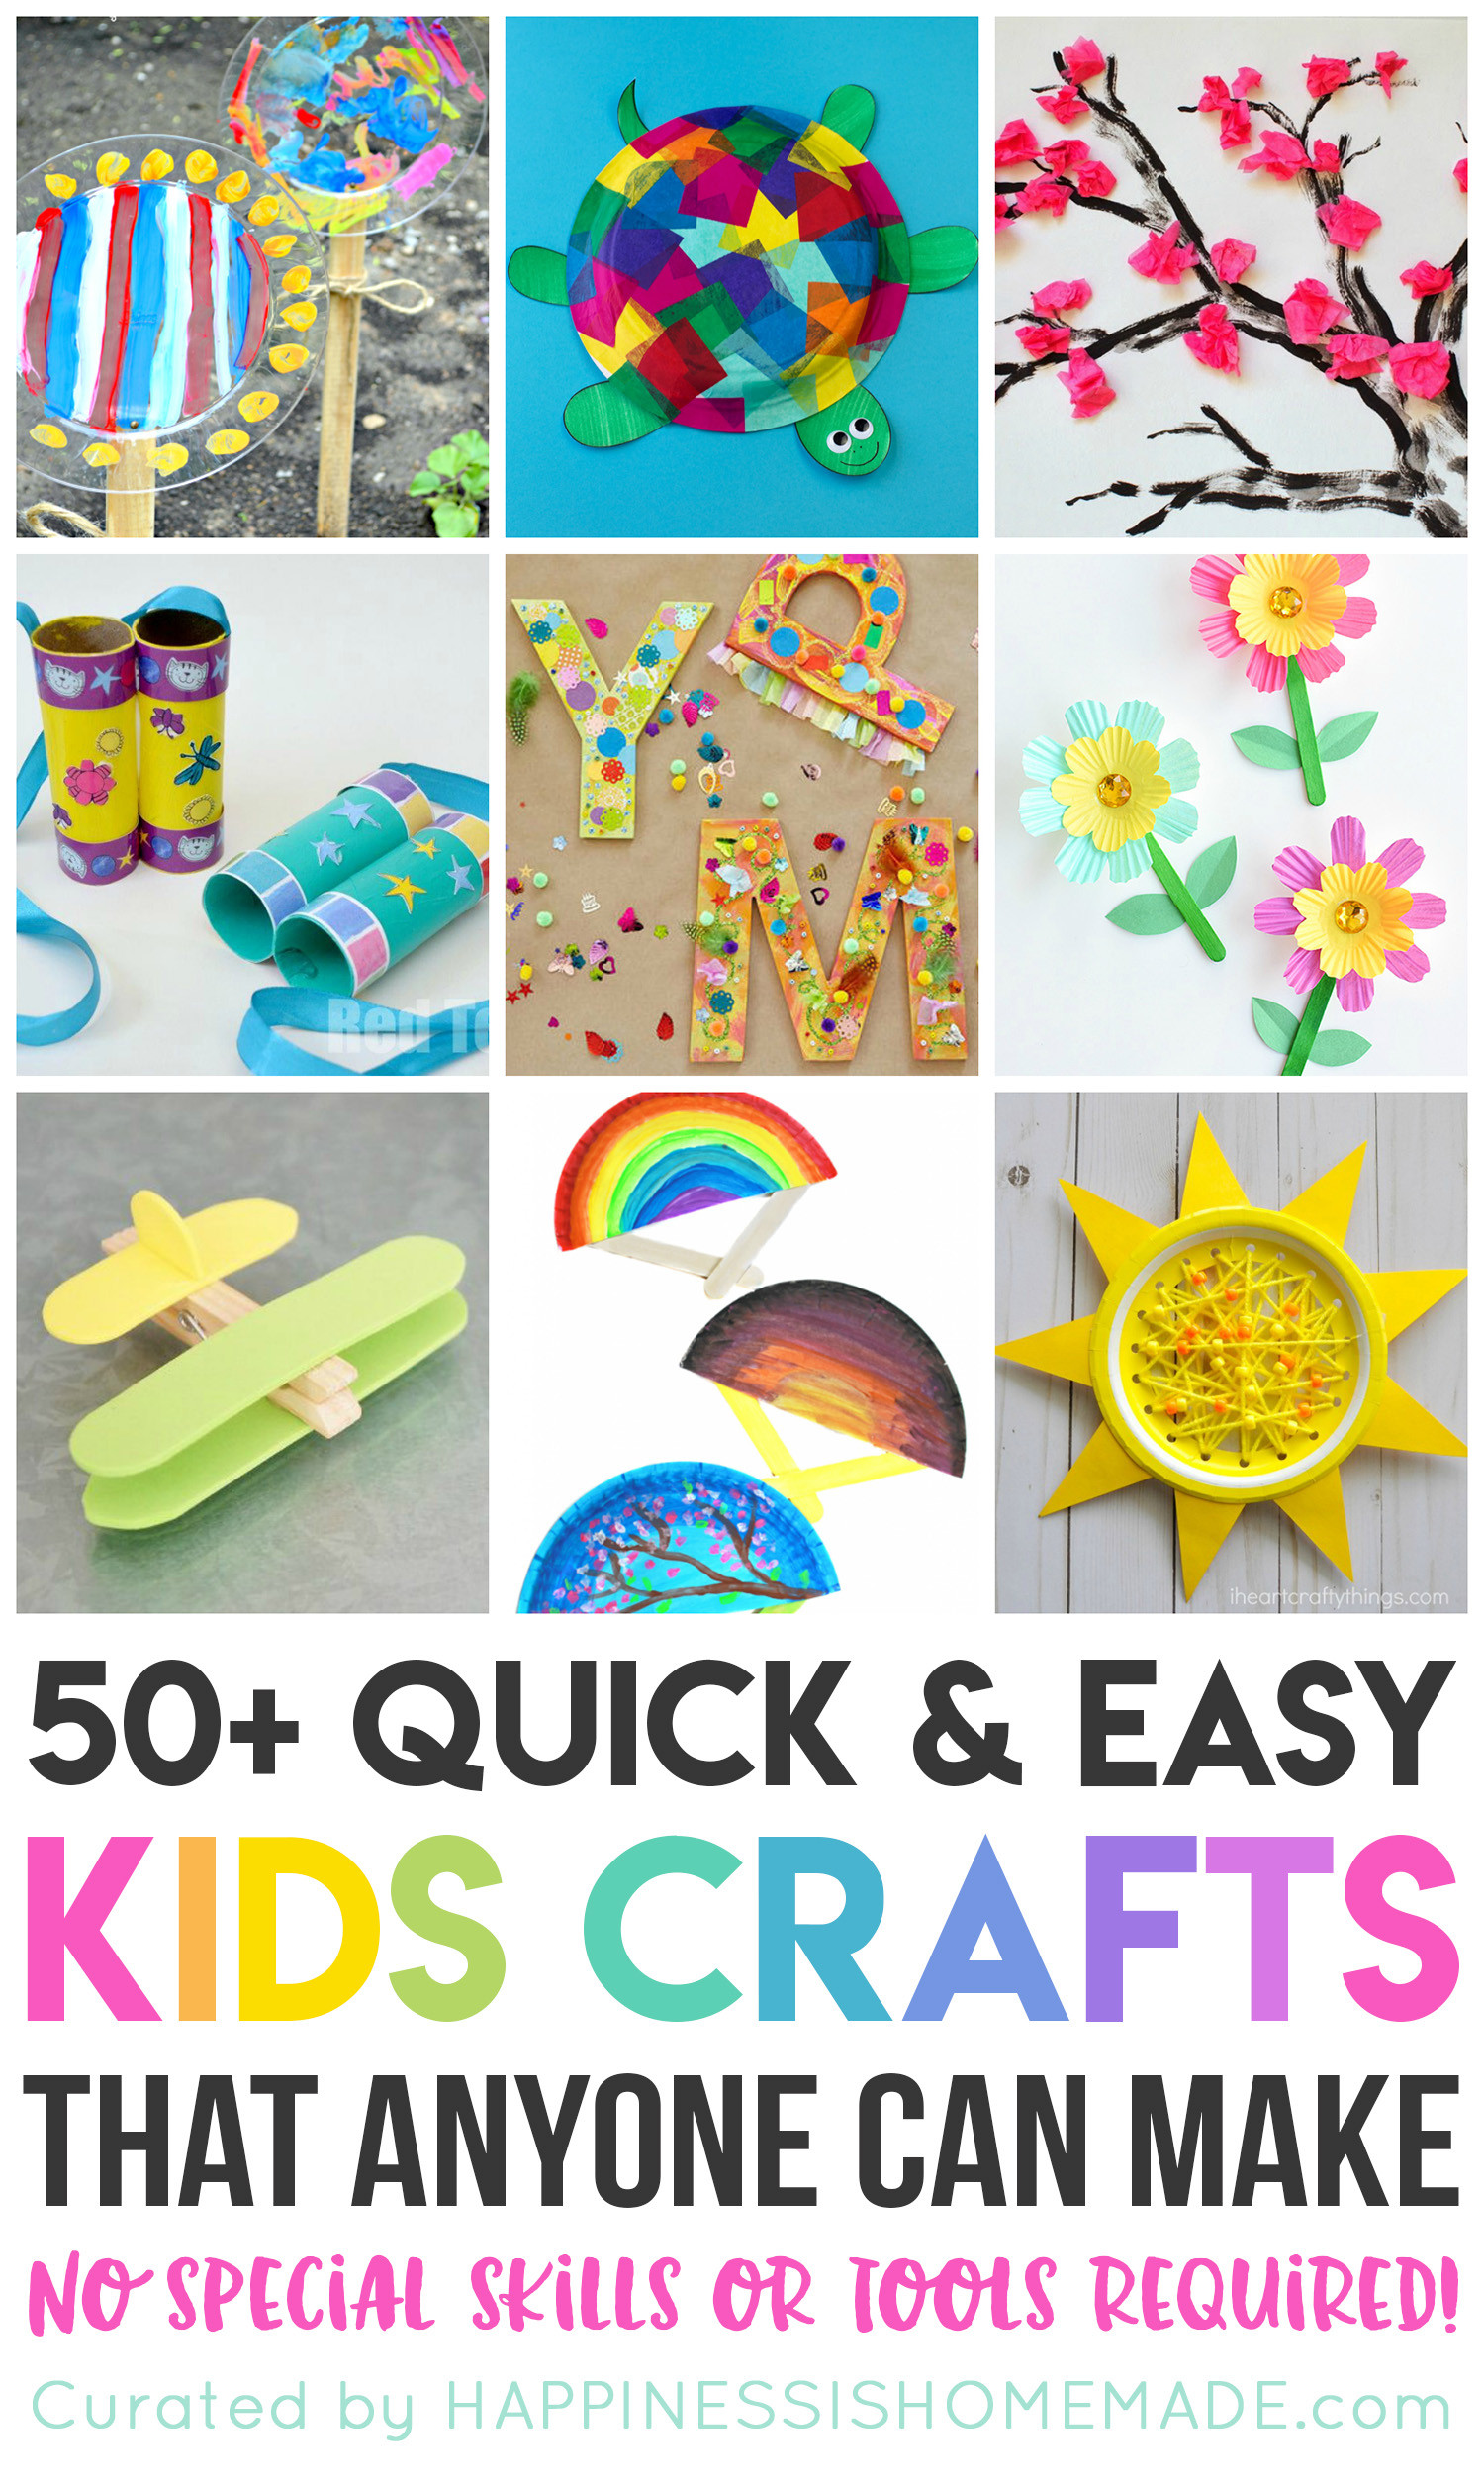 Best ideas about Cool Arts And Crafts For Kids . Save or Pin Quick & Easy Halloween Crafts for Kids Happiness is Homemade Now.